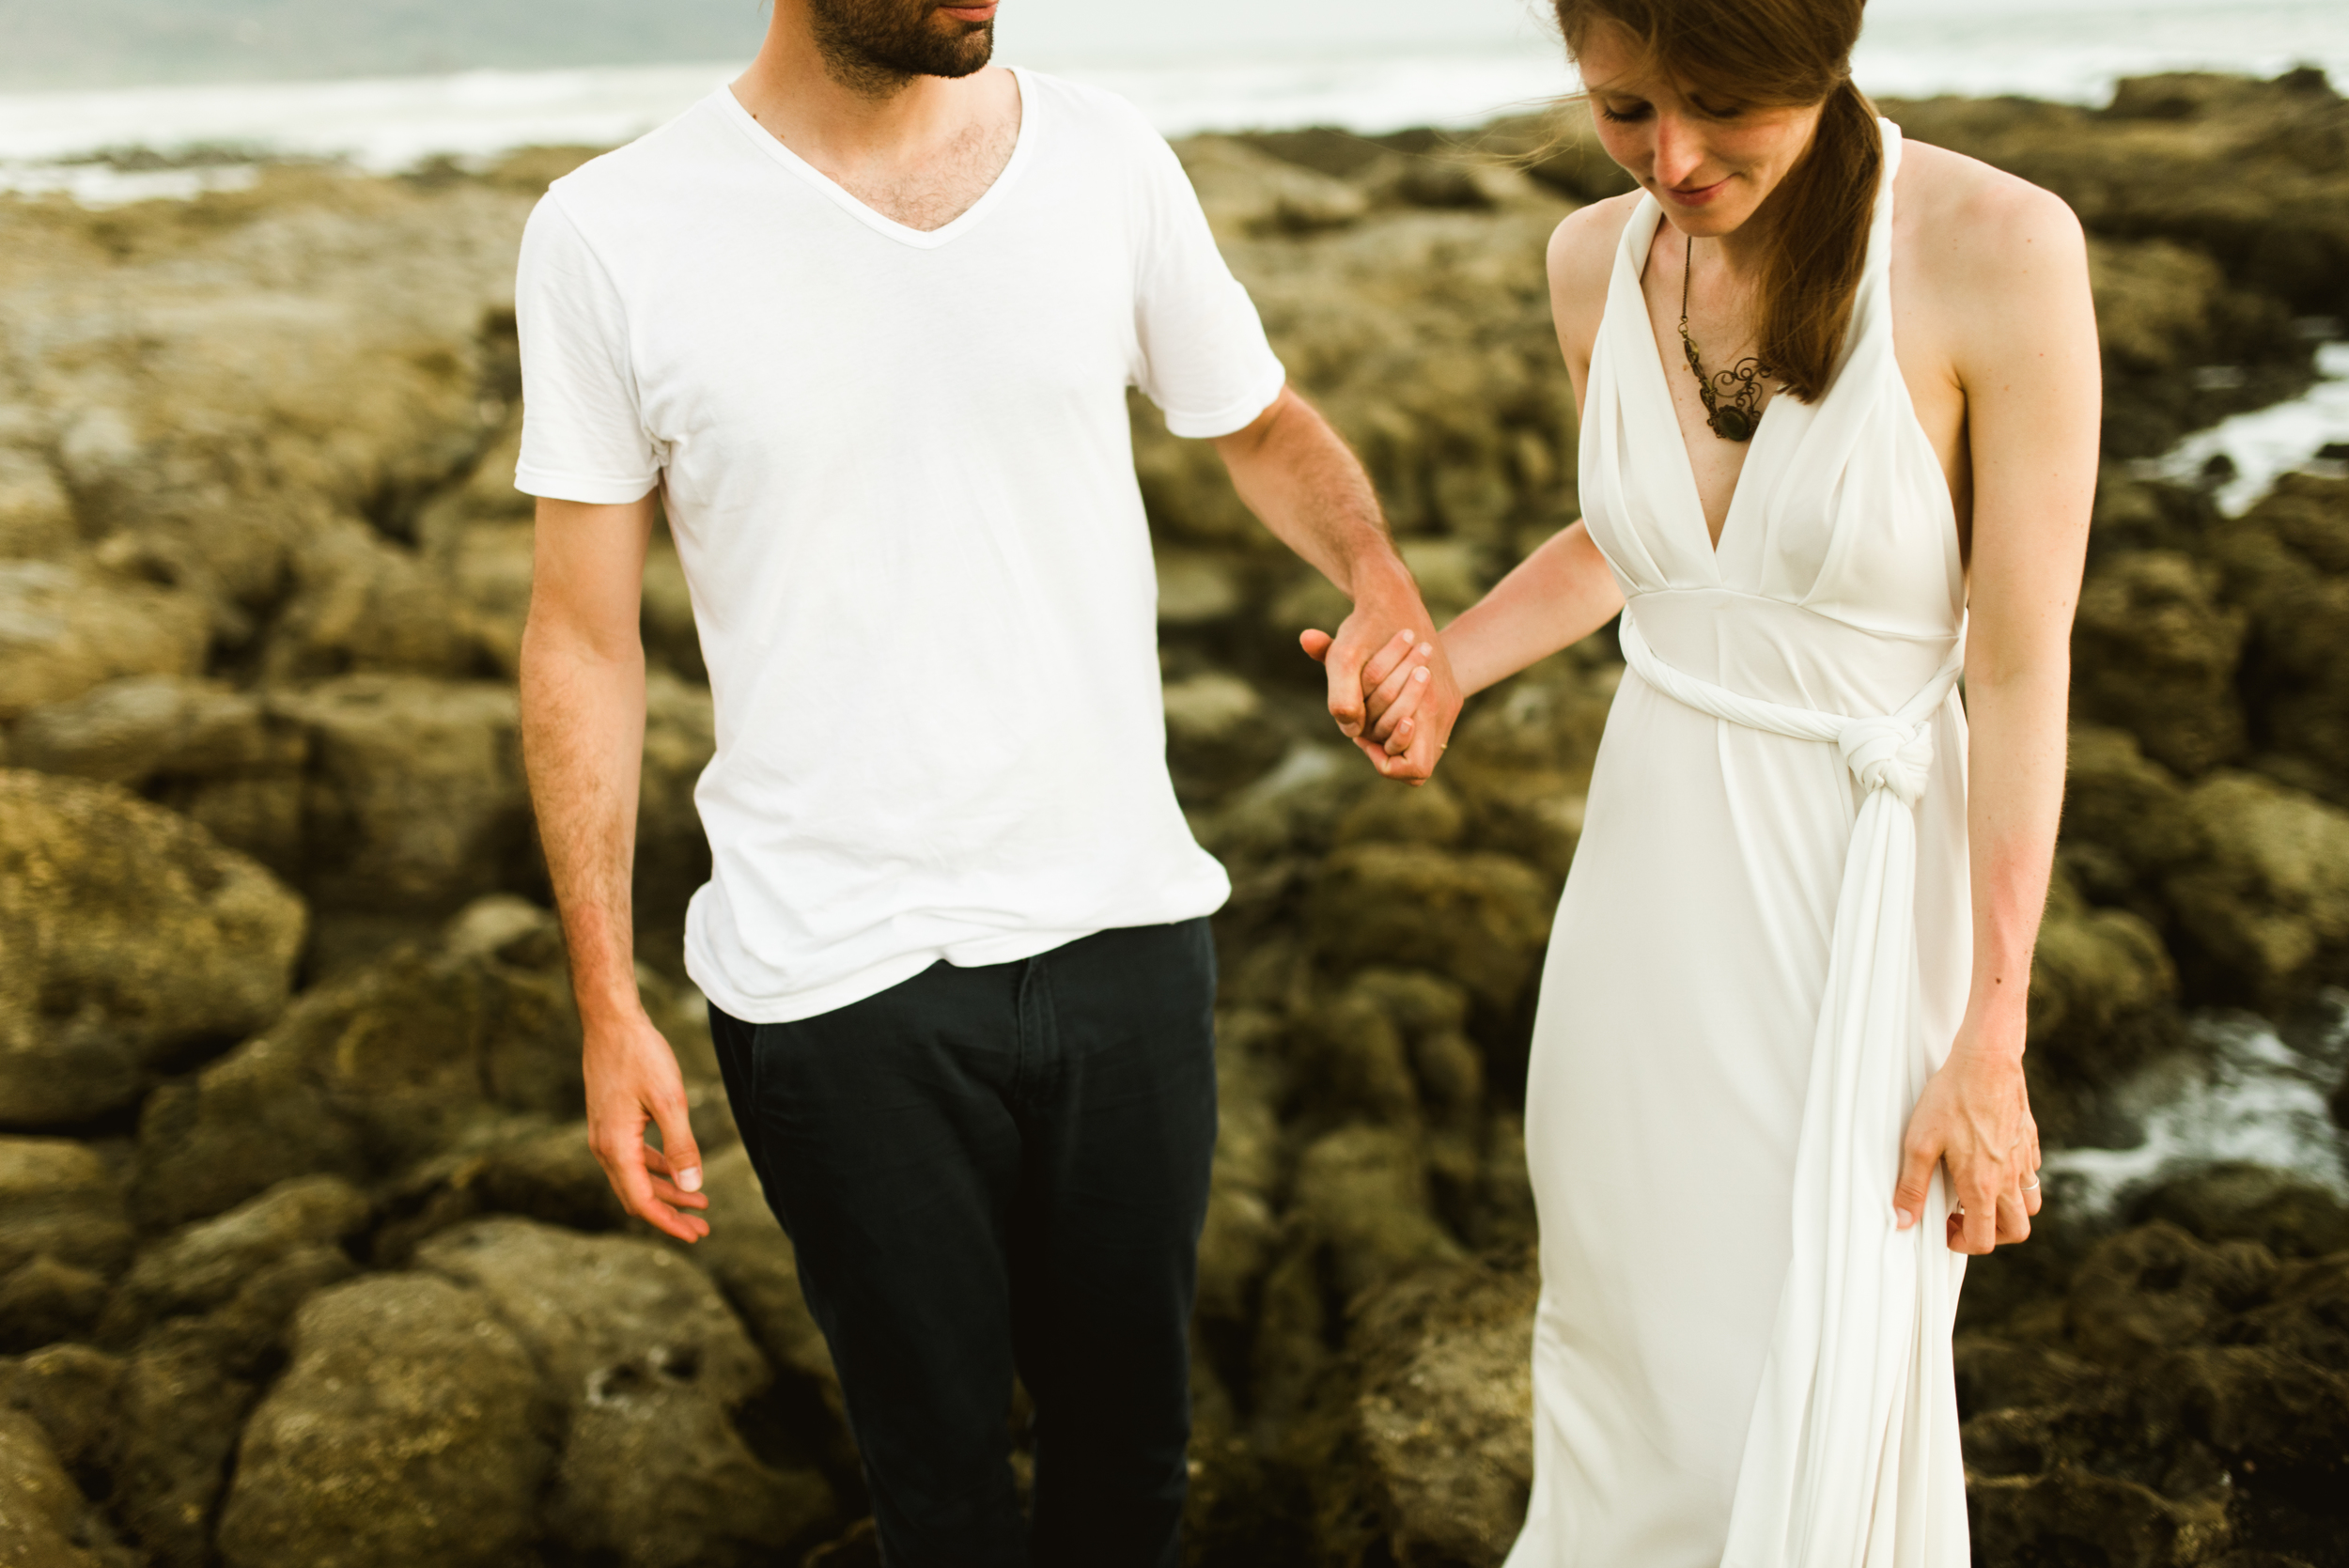 AdoRable casual, wedding photos in Costa Rica! I love how Stefan and Martina had their destination elopement on Santa Terest beach with a photographer! Elopements deserve just as much special treatment as big weddings!  Intimate wedding photography by Costa Rica destination wedding photographer, Maddie Mae.